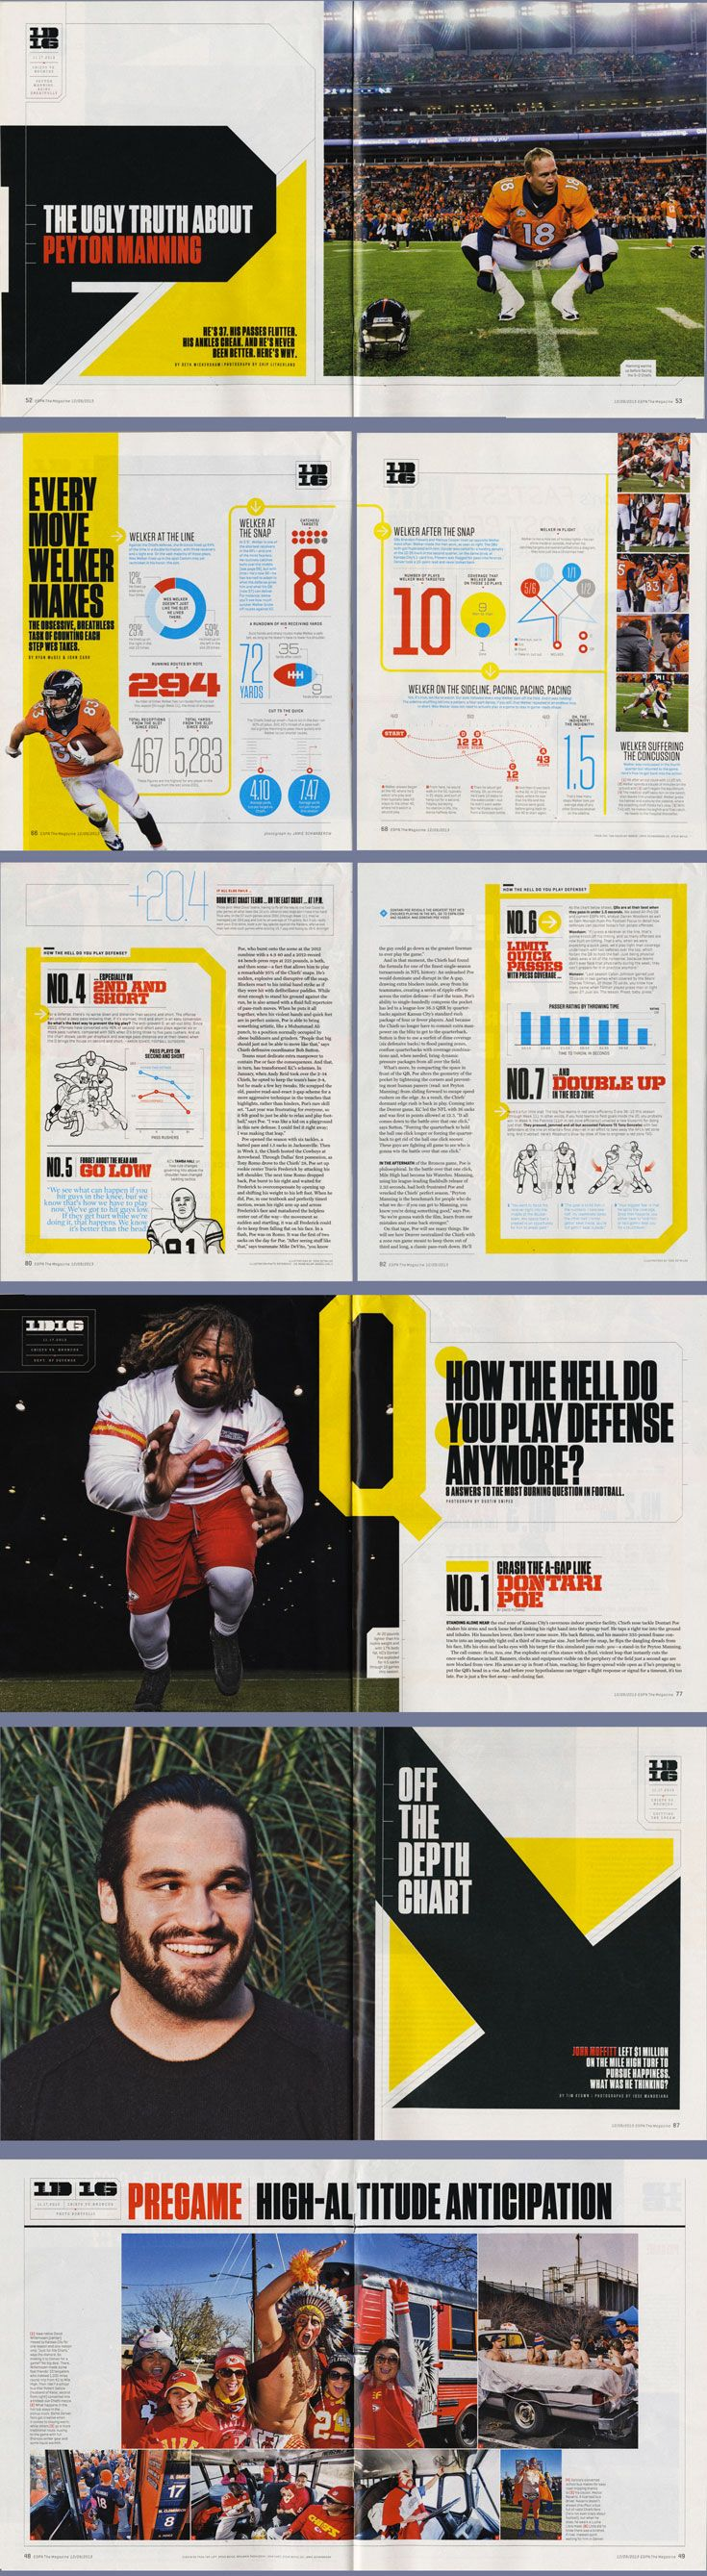 ESPN The Magazine's Dec. 9 One Day One Game issue. http://insider.espn.go.com/insider/espn-the-magazine/ Photo: Chip Litherland, http://www.chiplitherland.com/ Photo: http://dustinsnipes.com/ Photo: http://www.josemandojana.com Illustration: http://www.todddetwiler.com/